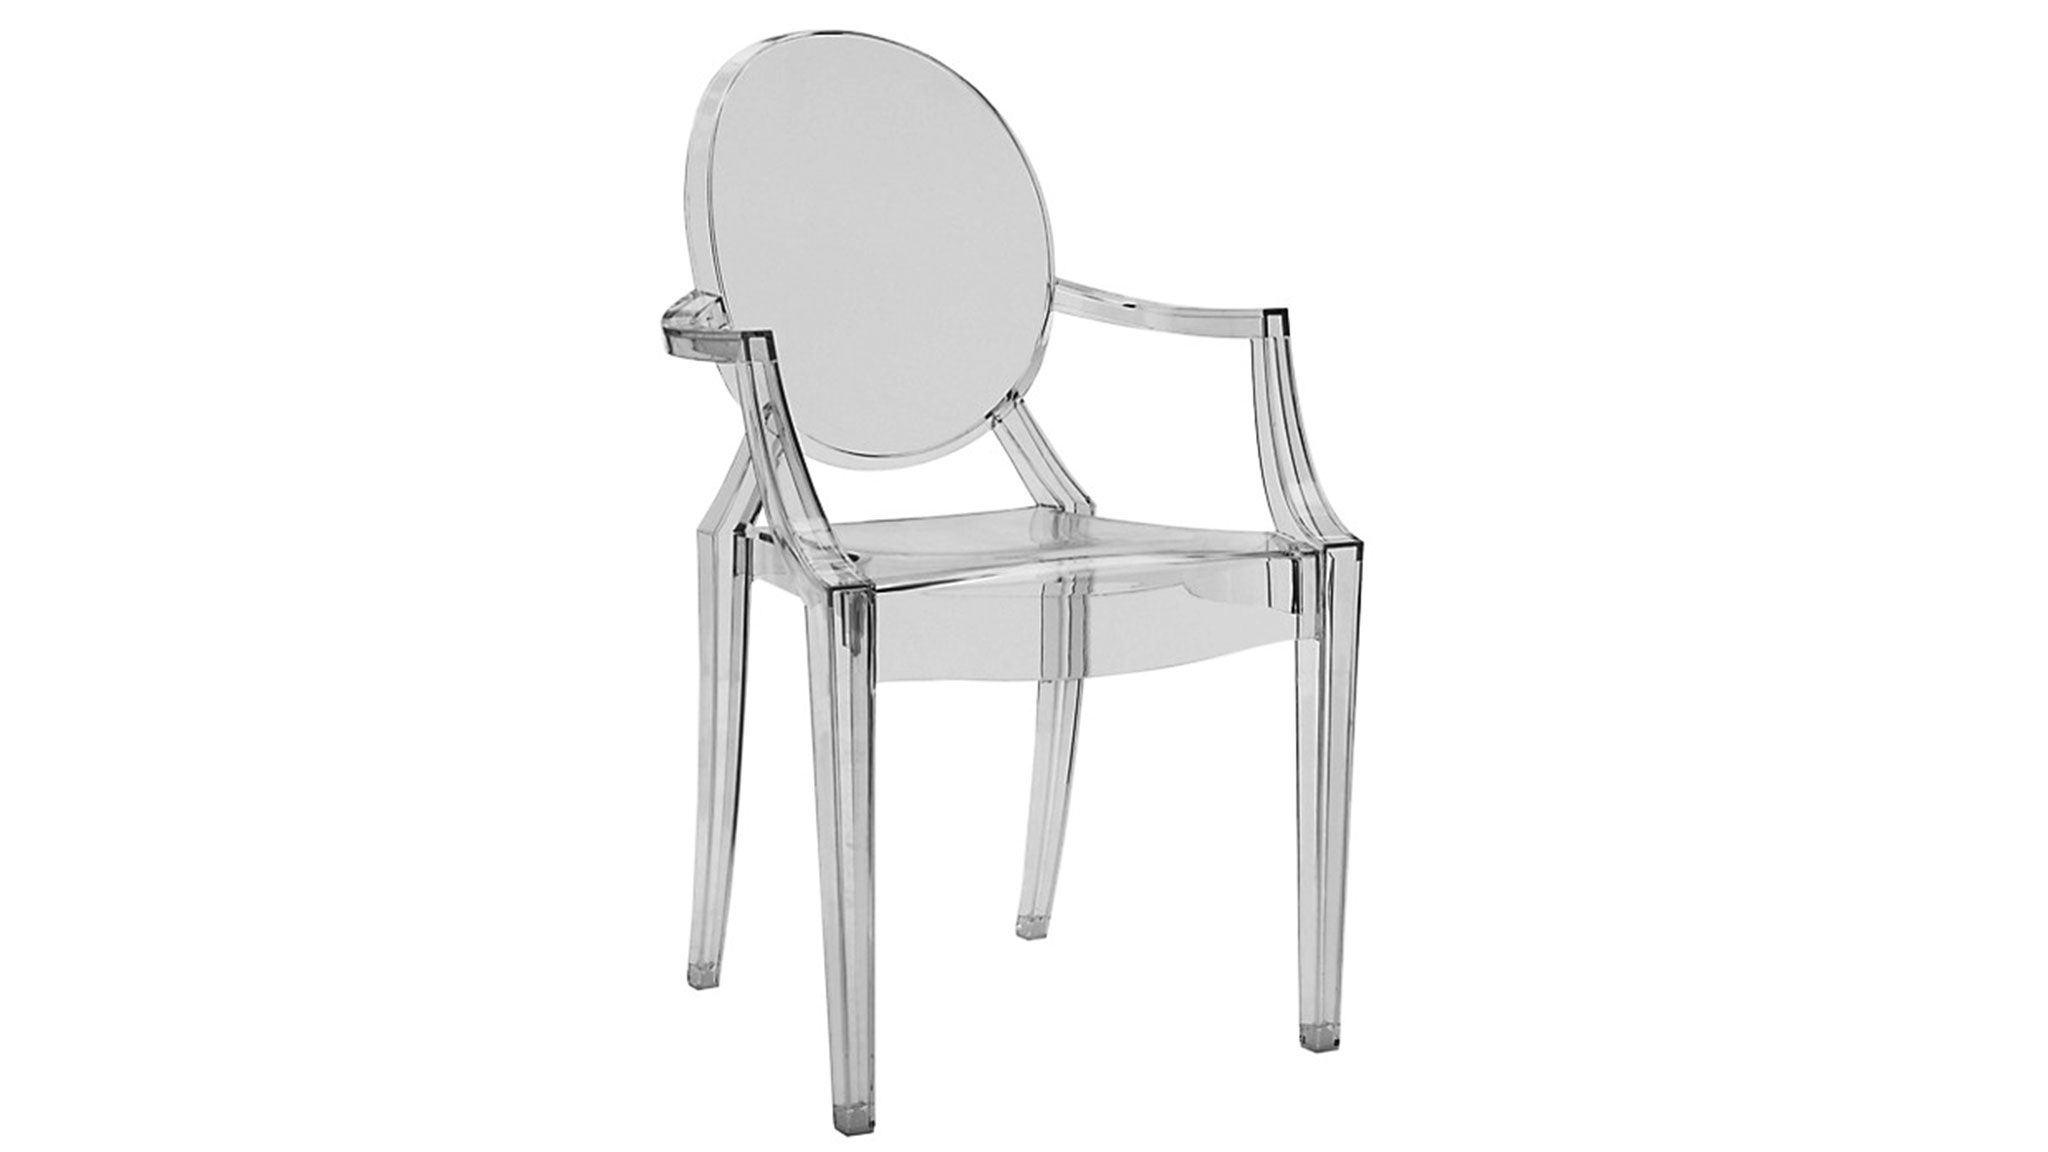 Design classic: the Louis Ghost chair by Philippe Starck | Financial ...